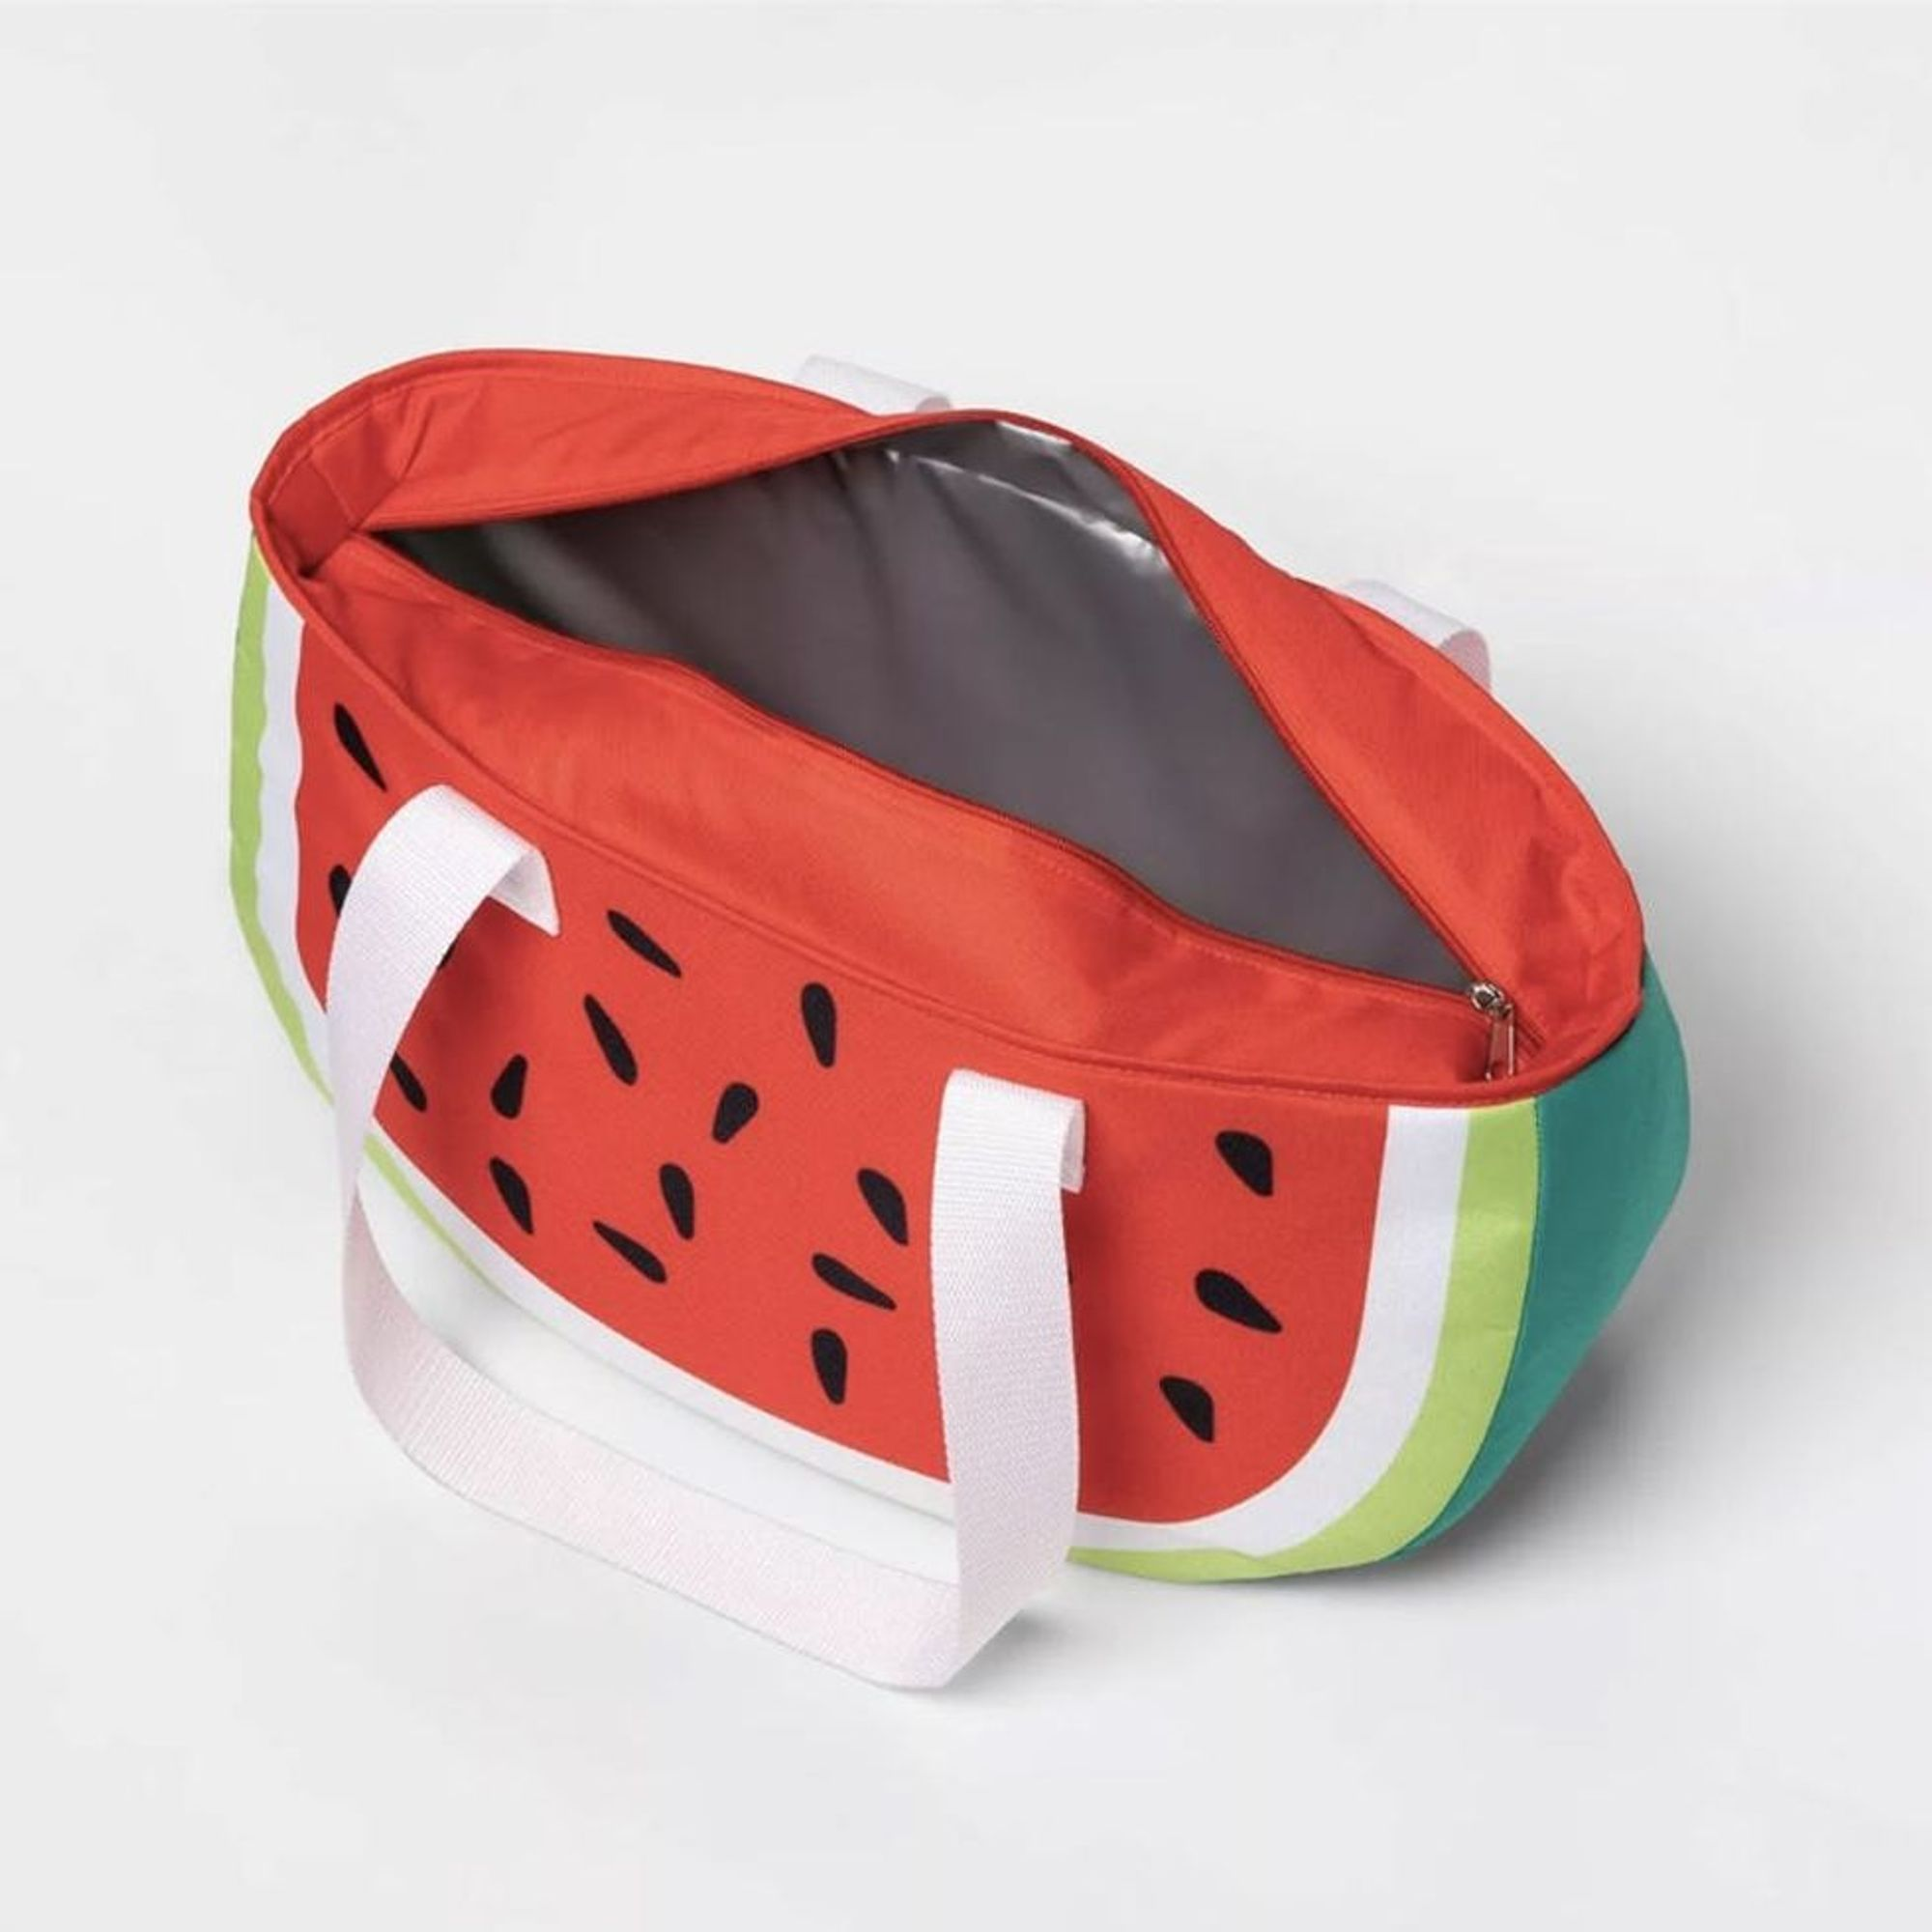 15 Watermelon Gifts That Celebrate Summer's Favorite Fruit